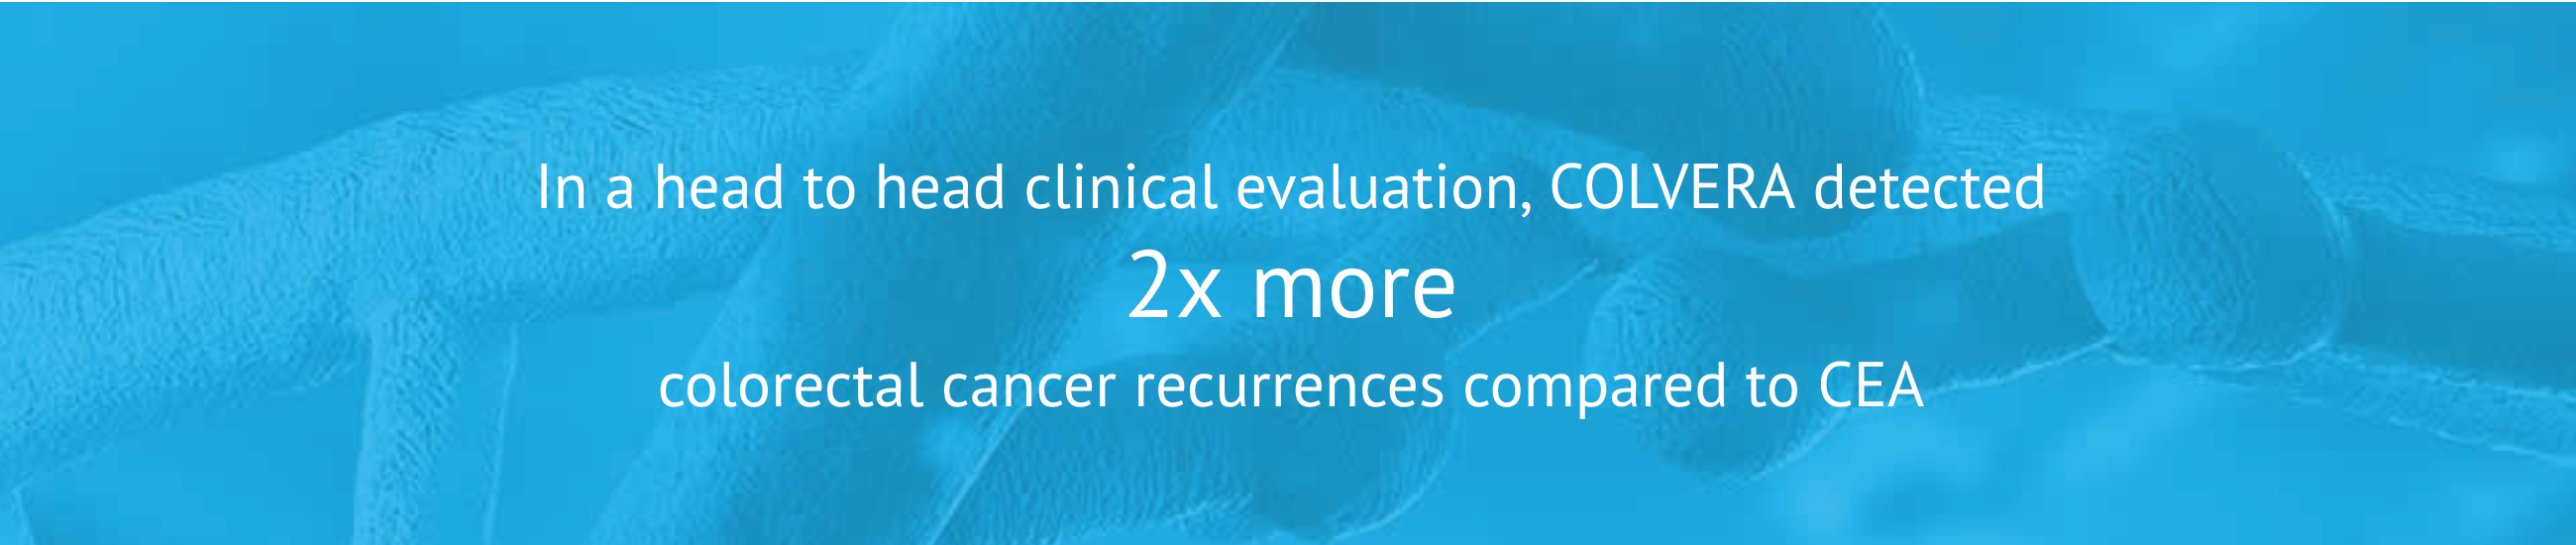 In a head to head clinical evaluation, COLVERA detected 2x more colrectal cancer recurrences compared to CEA